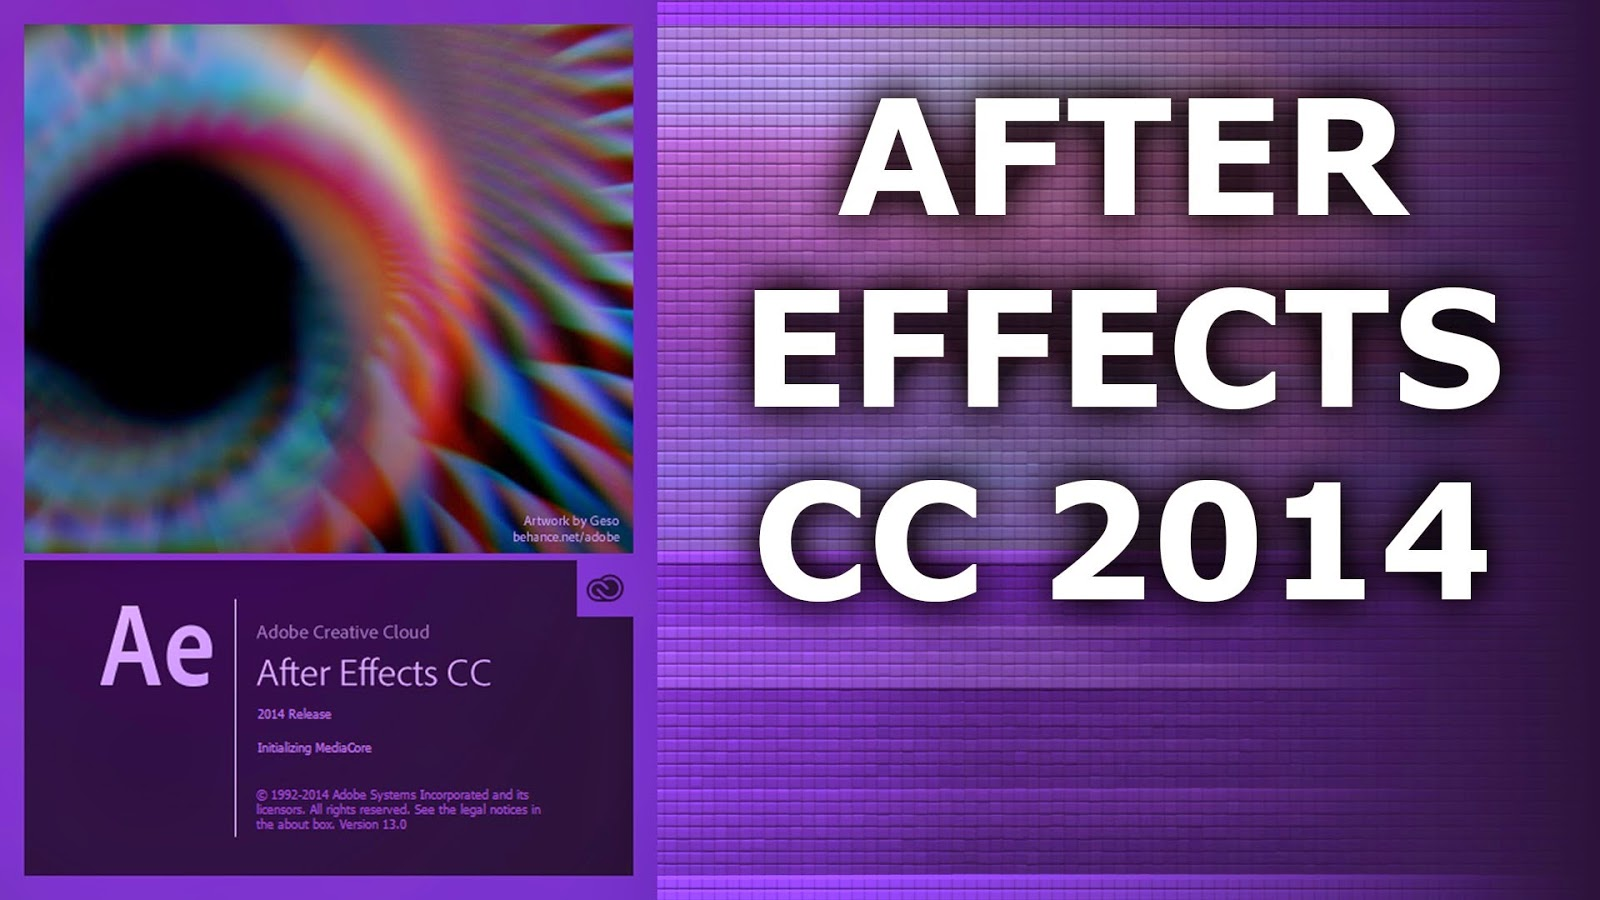 After Effects CC 12.2.1 Image